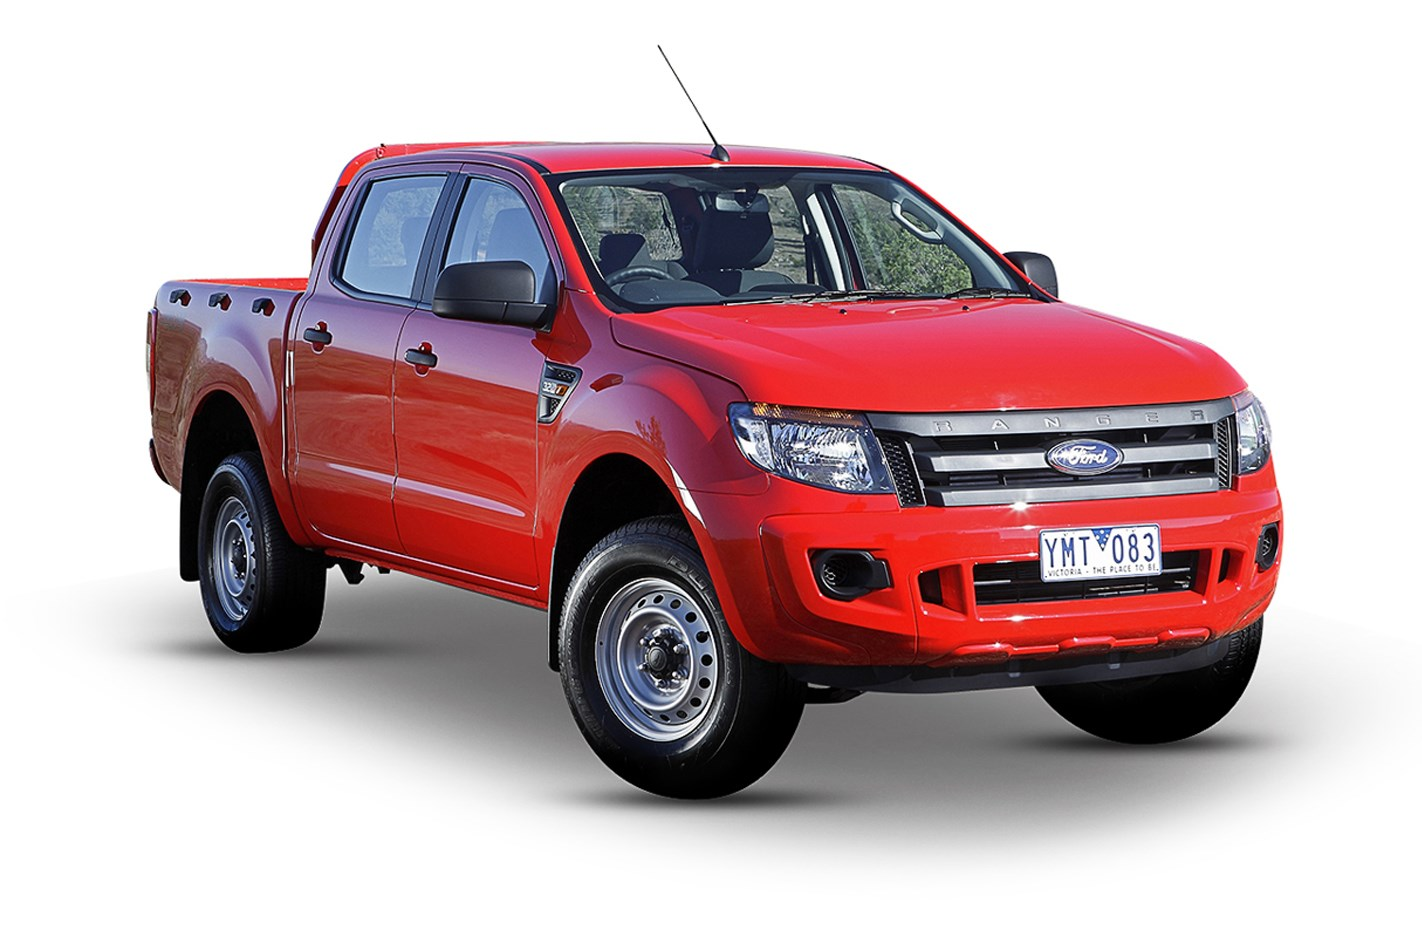 2018 Ford Ranger XLT 3.2 Hi-Rider (4x2), 3.2L 5cyl Diesel Turbocharged  Manual, Ute